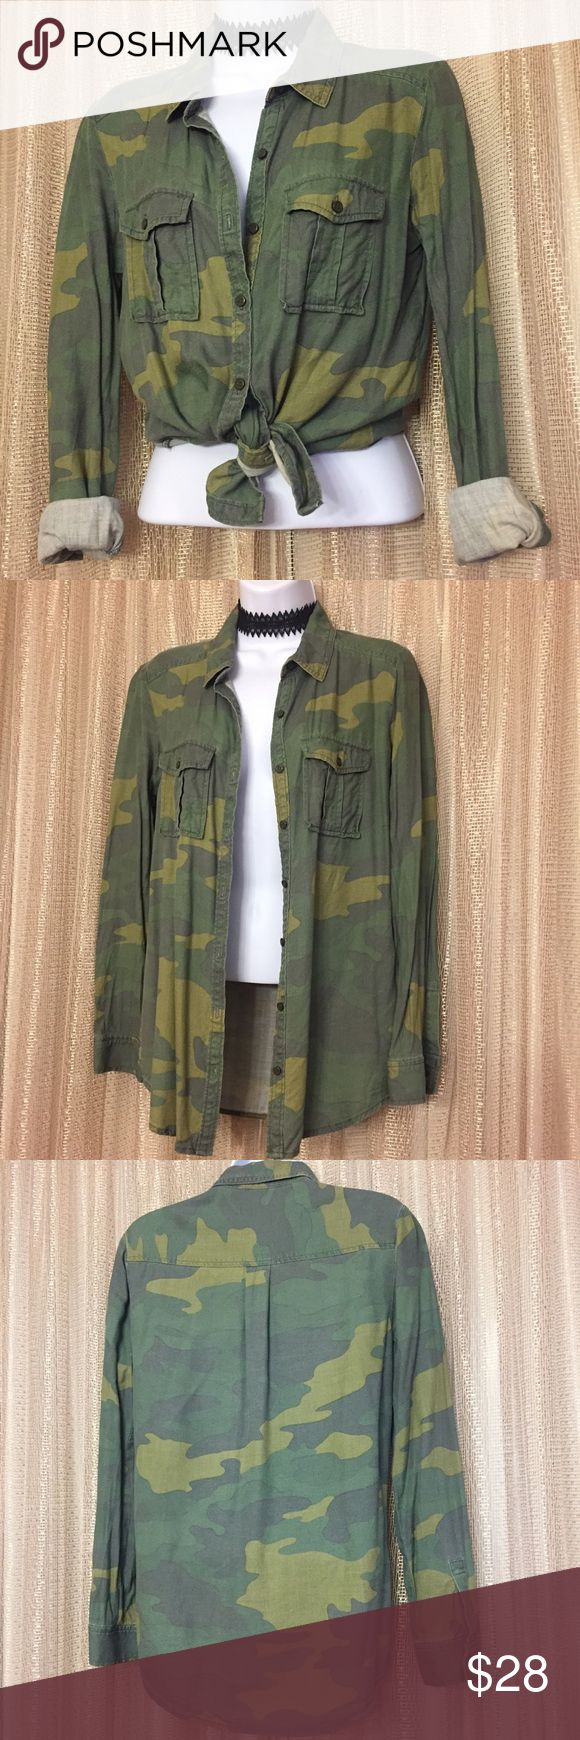 Rubbish Camo Shirt Great condition with no flaws see photos.  Bundle and save! Rubbish Tops Button Down Shirts